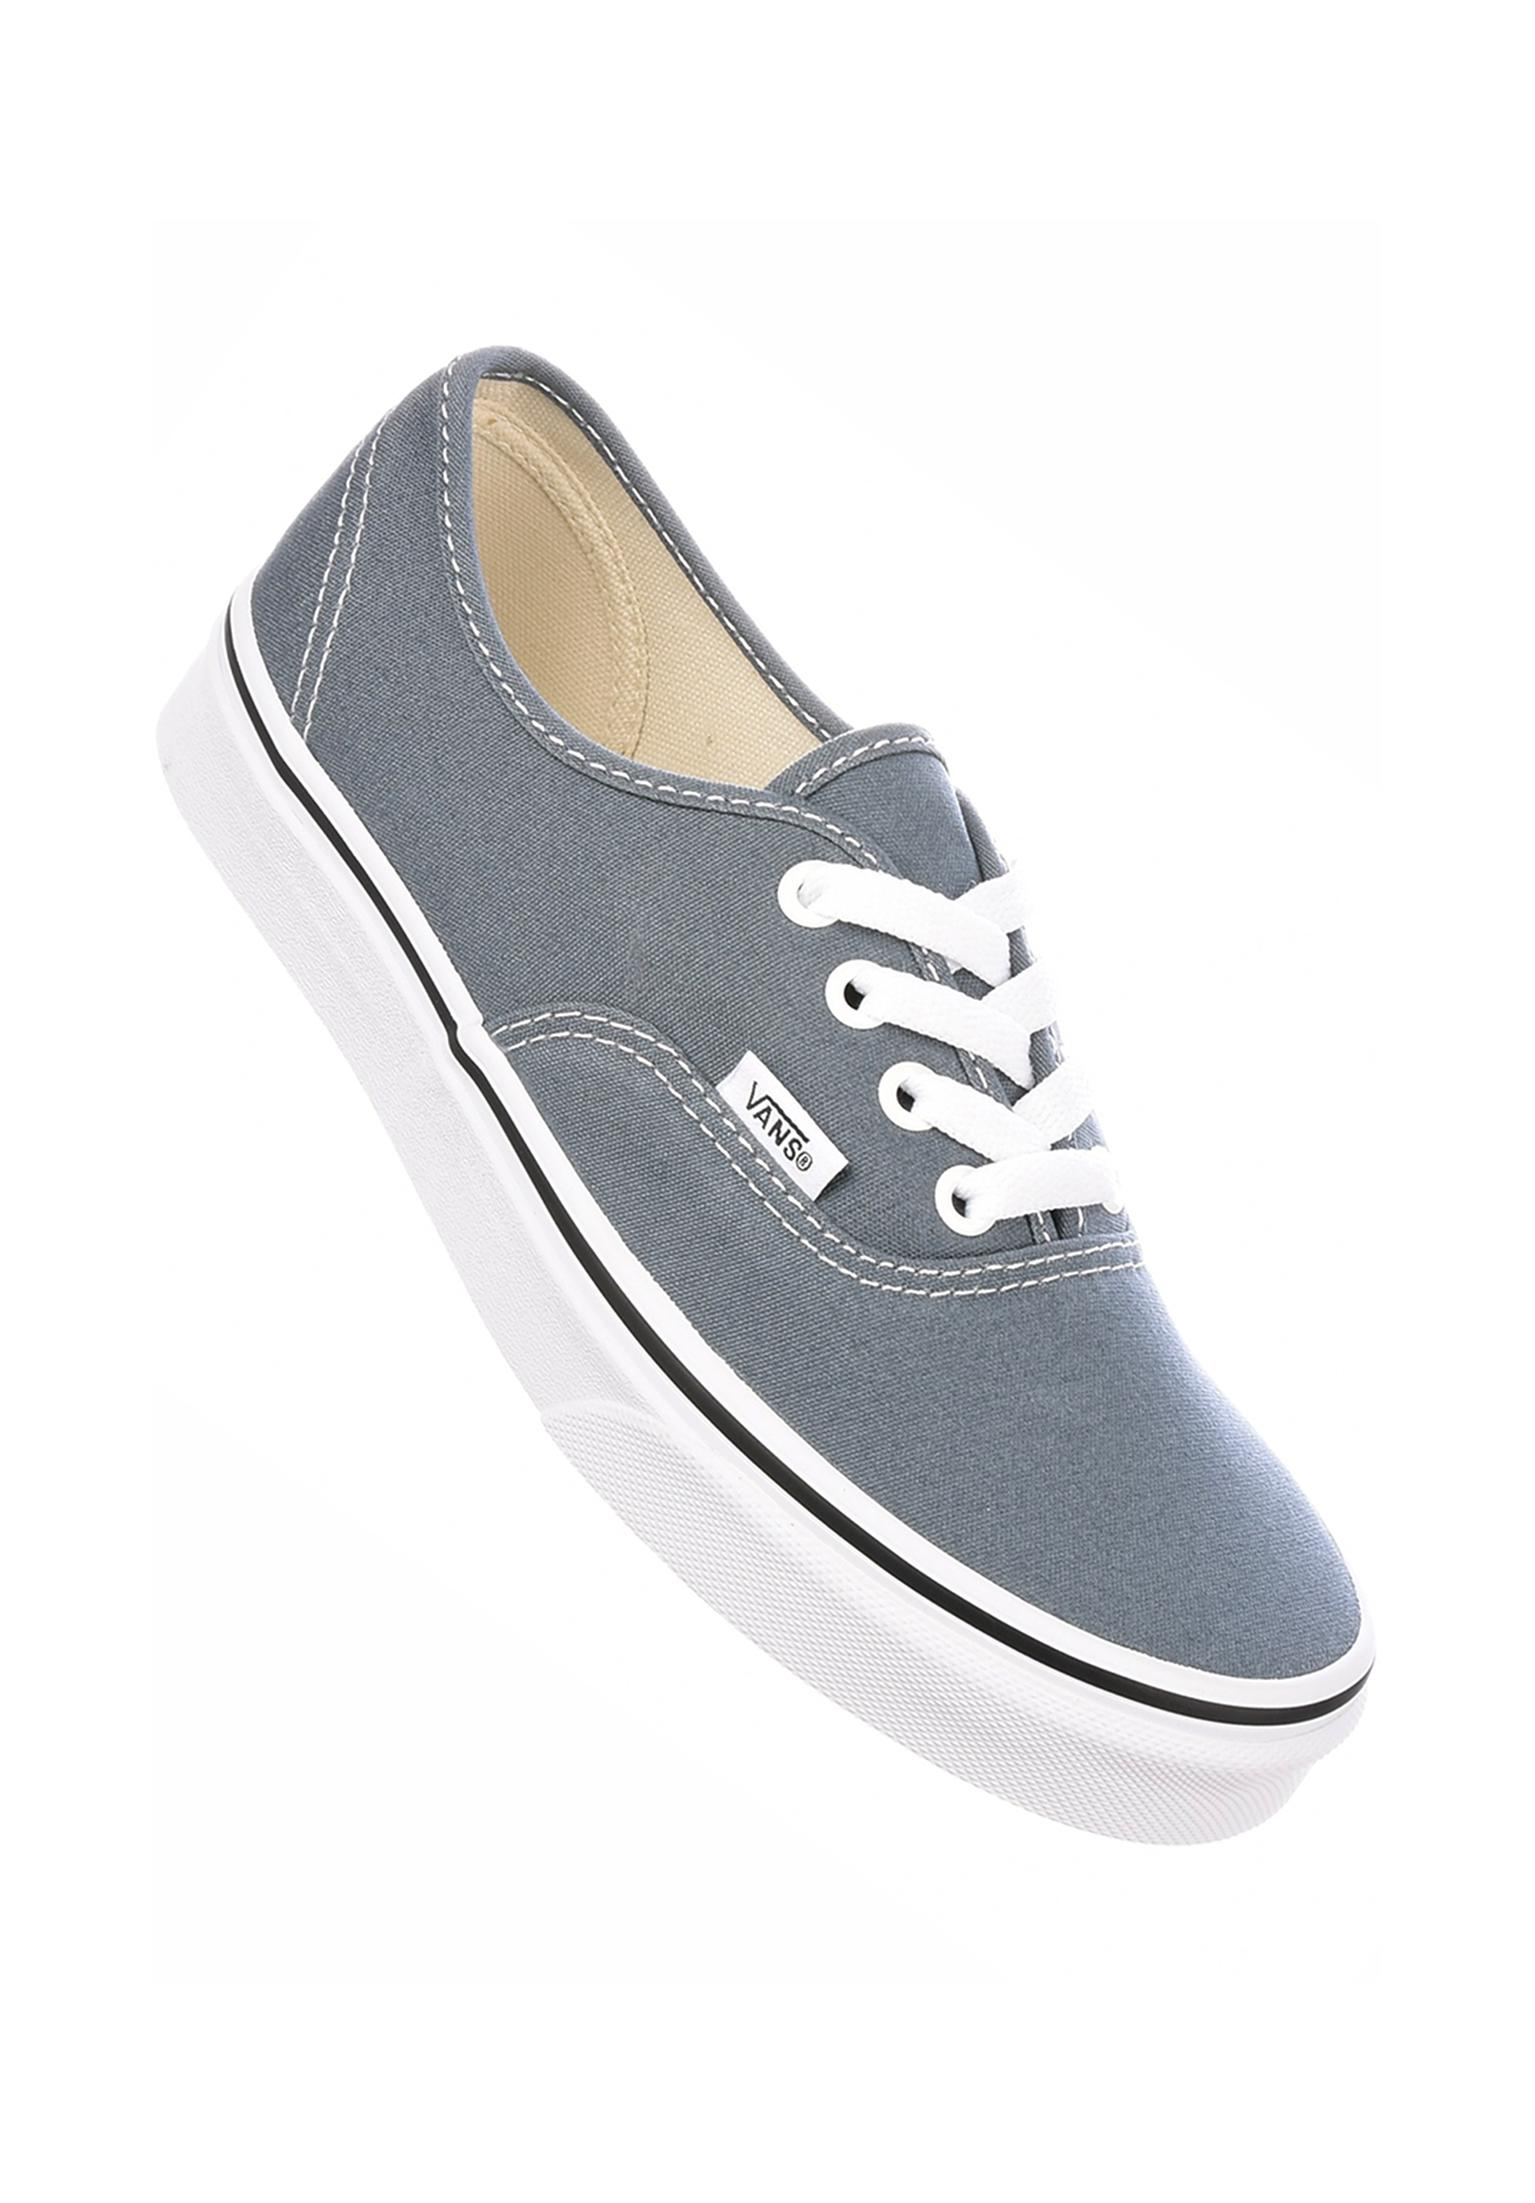 84f869762ea931 Authentic Classic Vans All Shoes in goblinblue-truewhite for Women ...